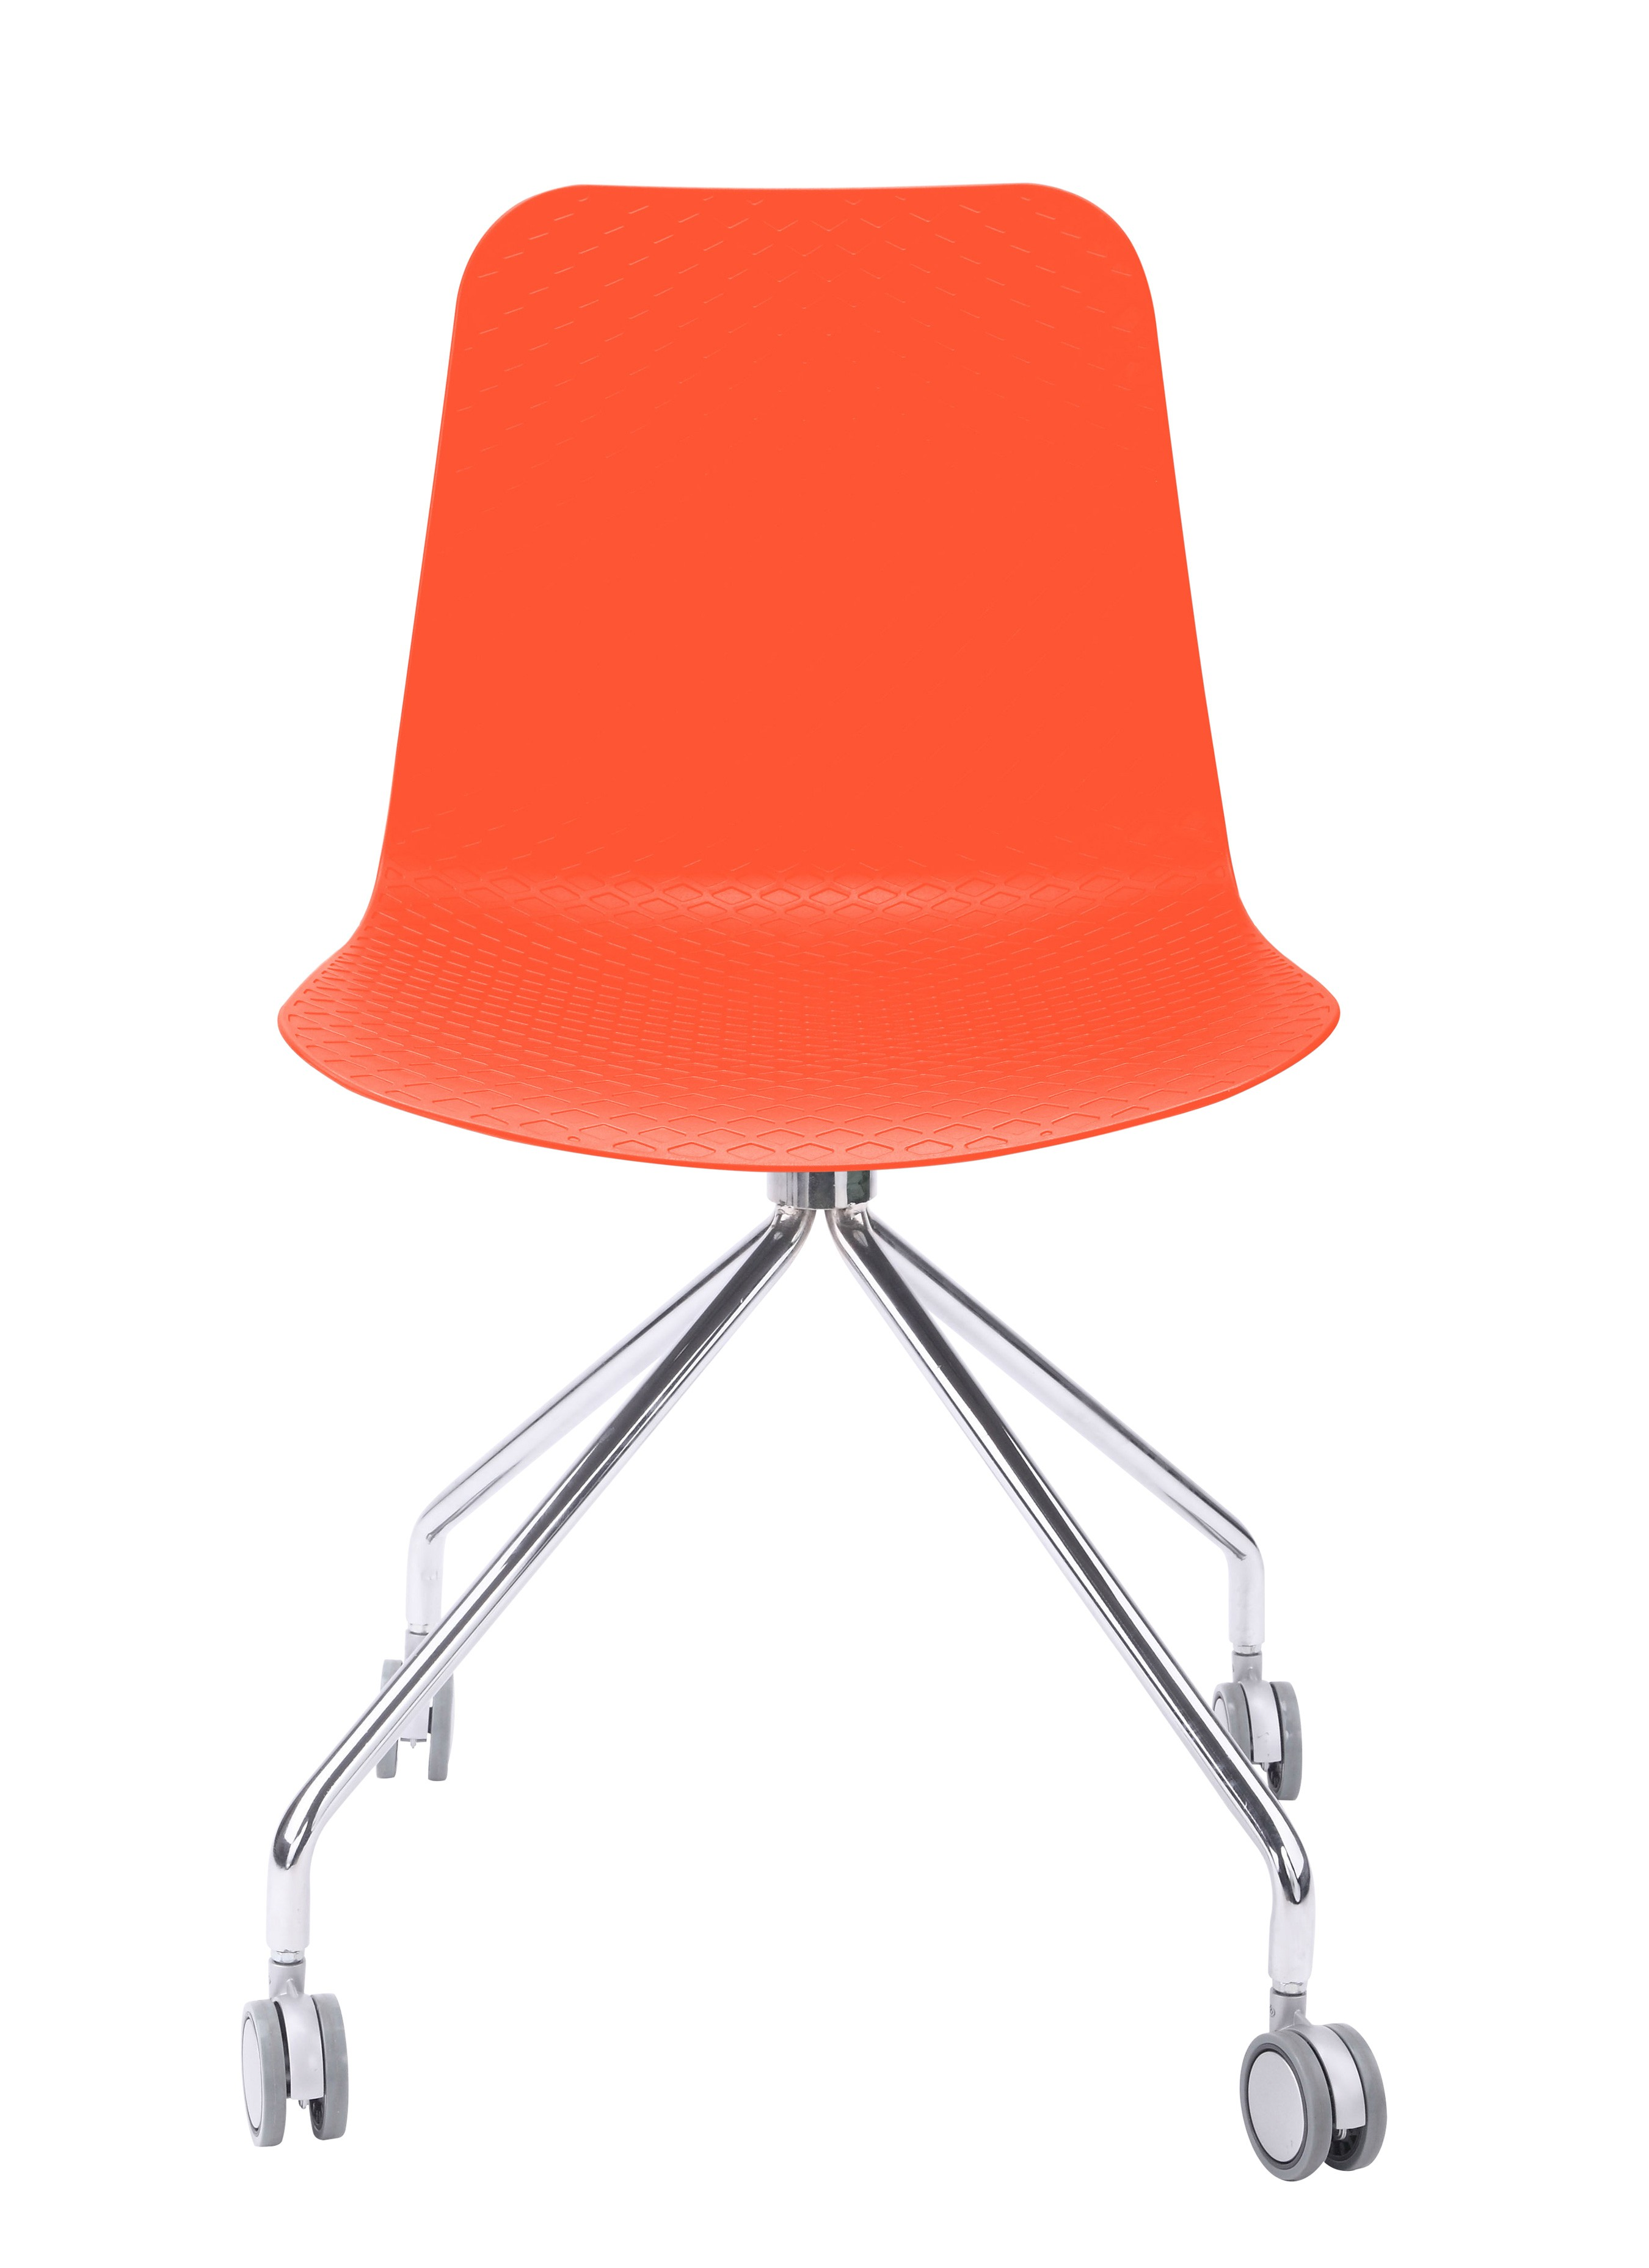 orange office chair fully adjustable ergonomic hebe series molded plastic designer task with your purchase receive at no cost